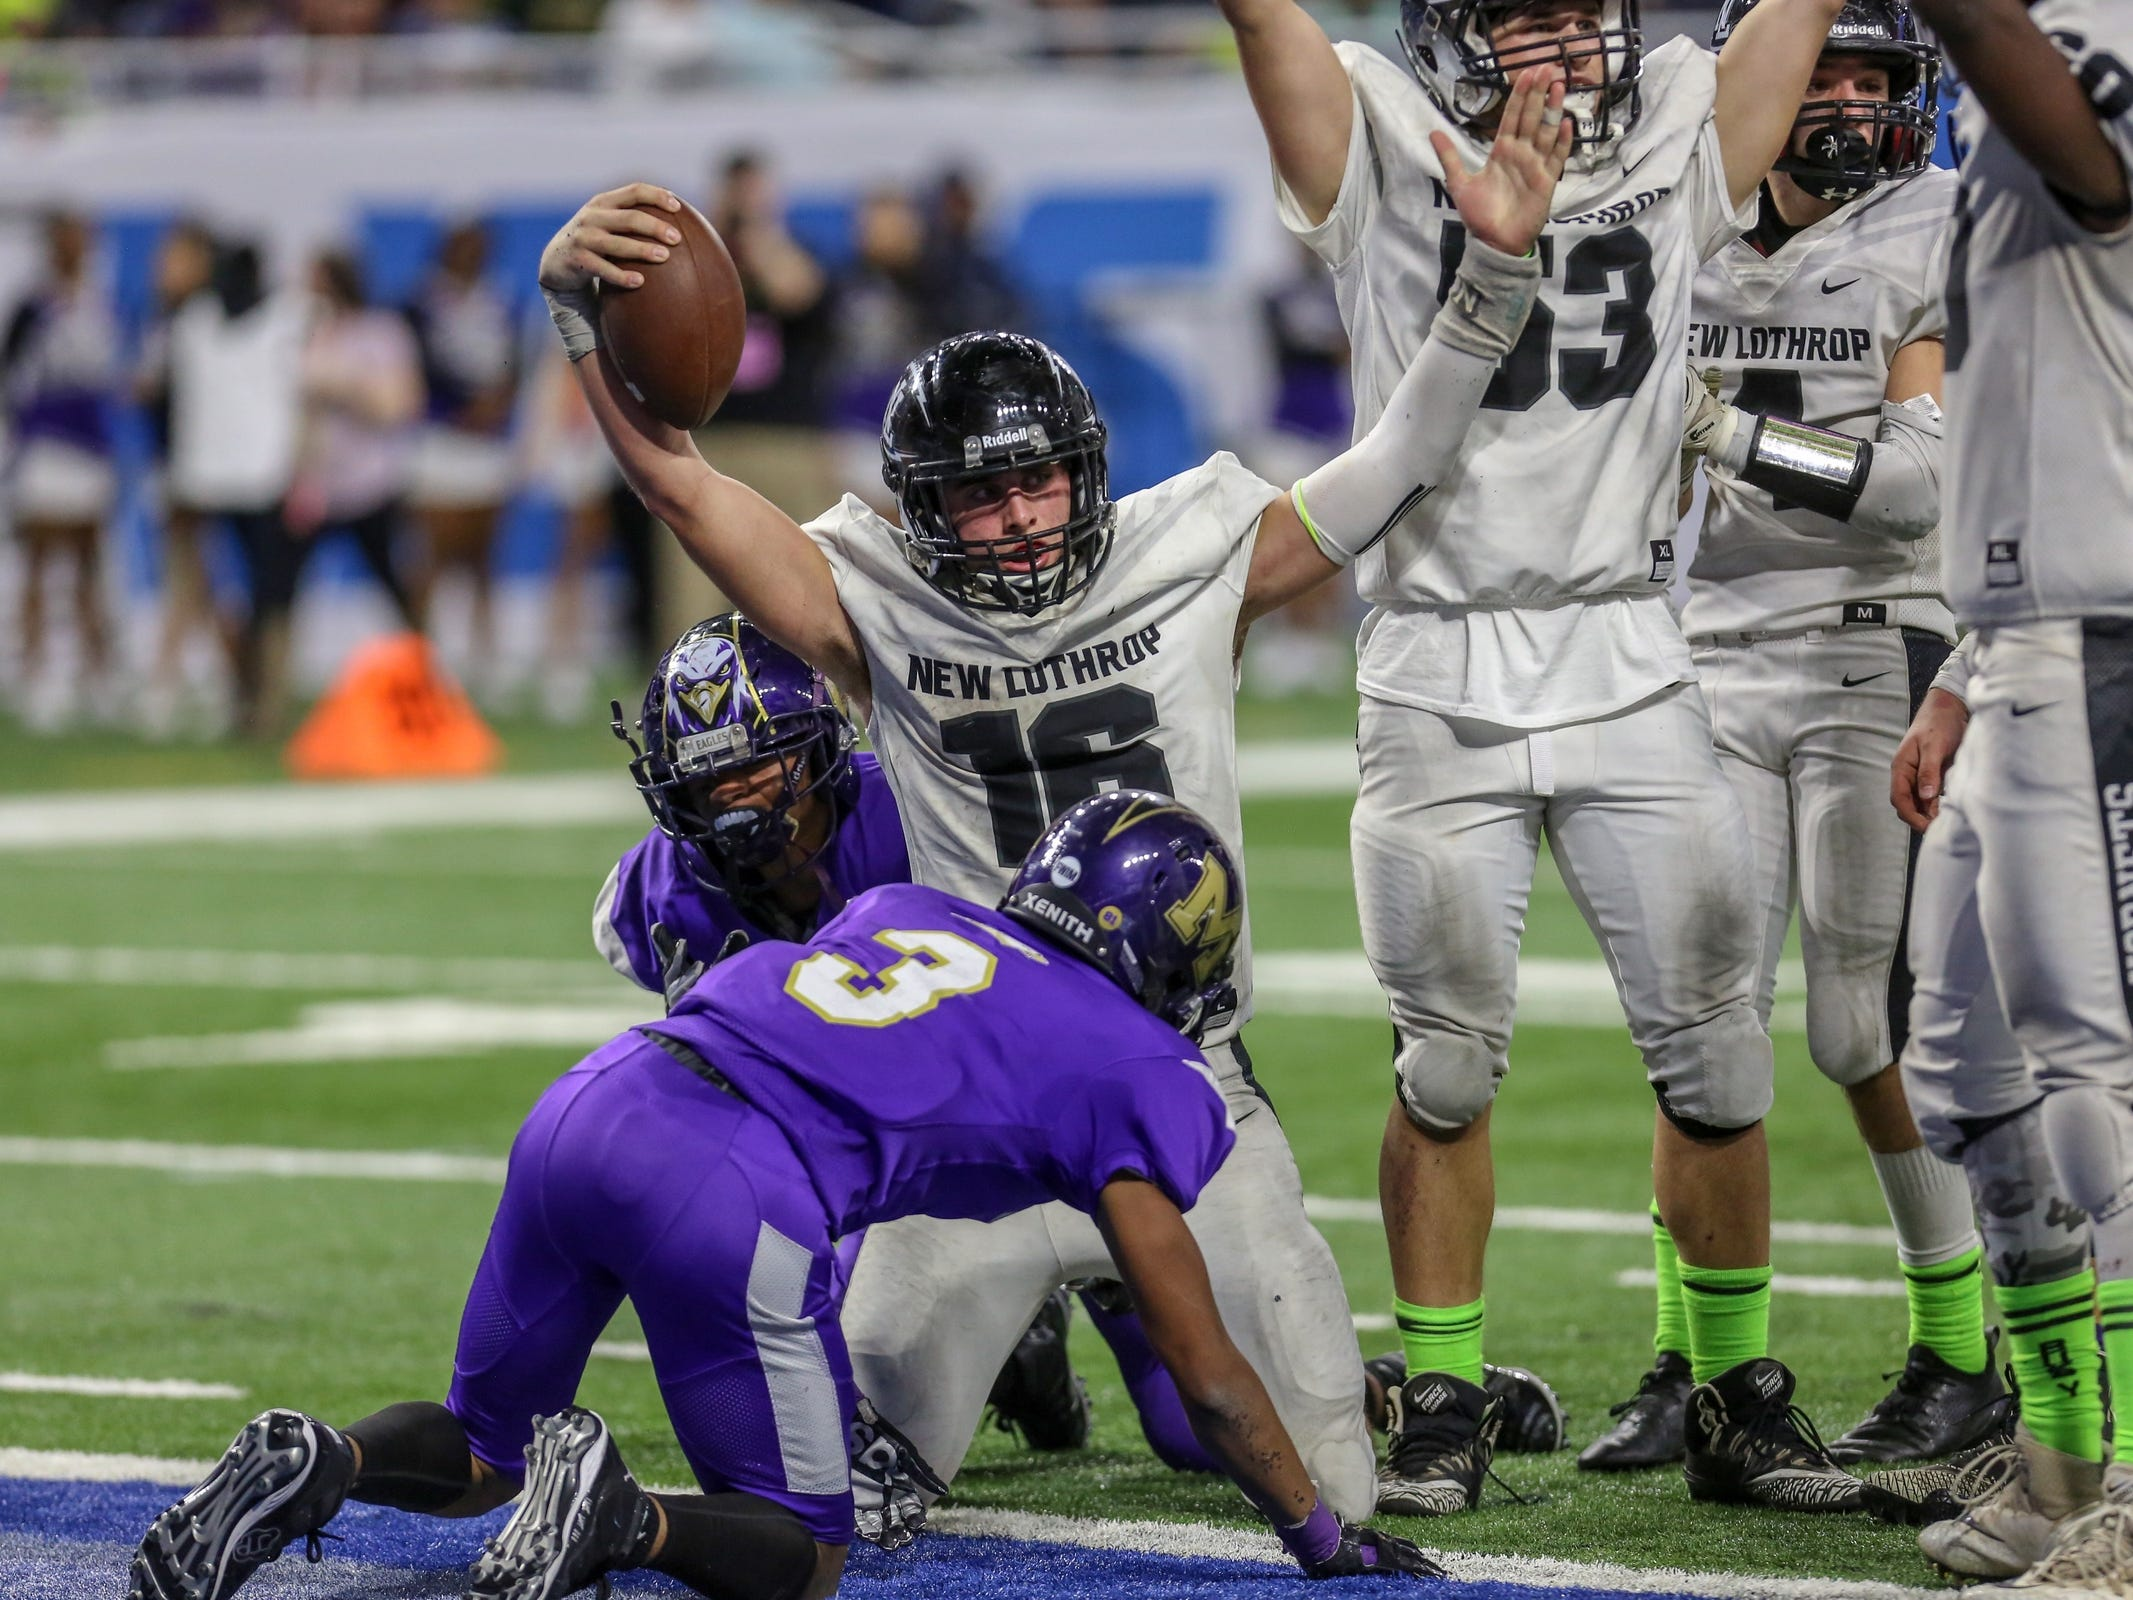 Avery Moore, all grown up, leads New Lothrop to title over M.H. Madison